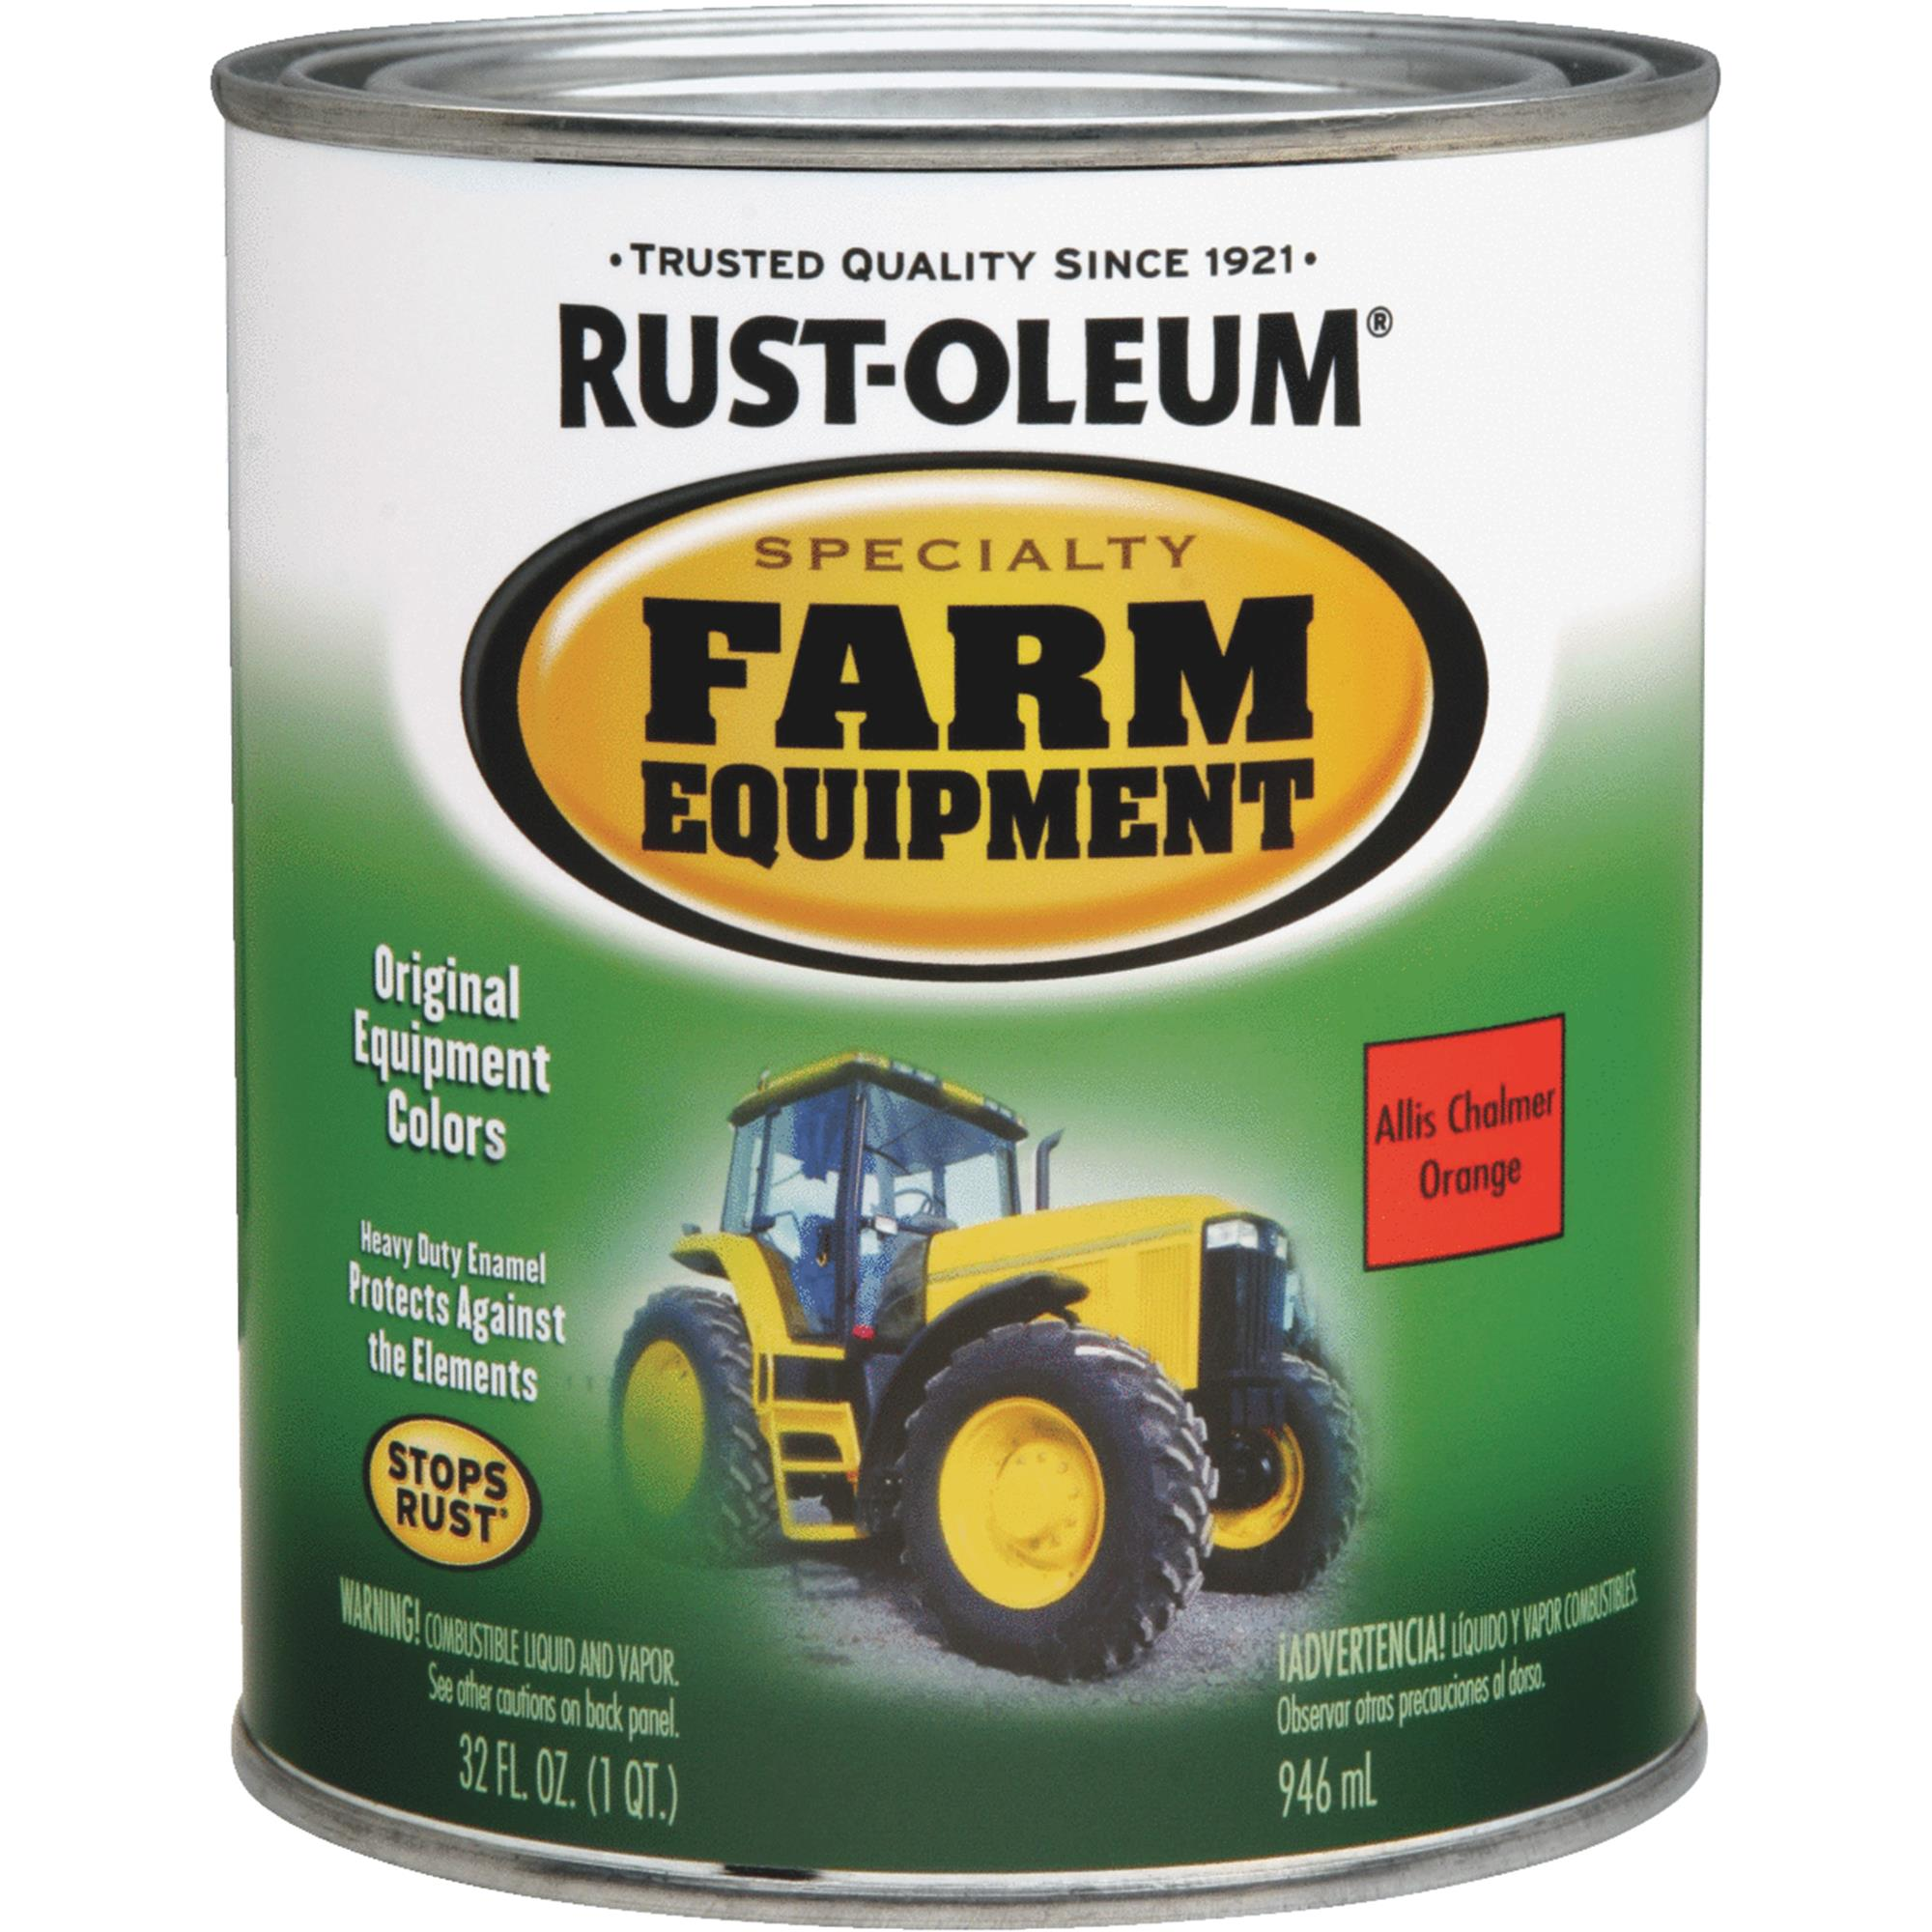 Rust-Oleum Farm Equipment Enamel